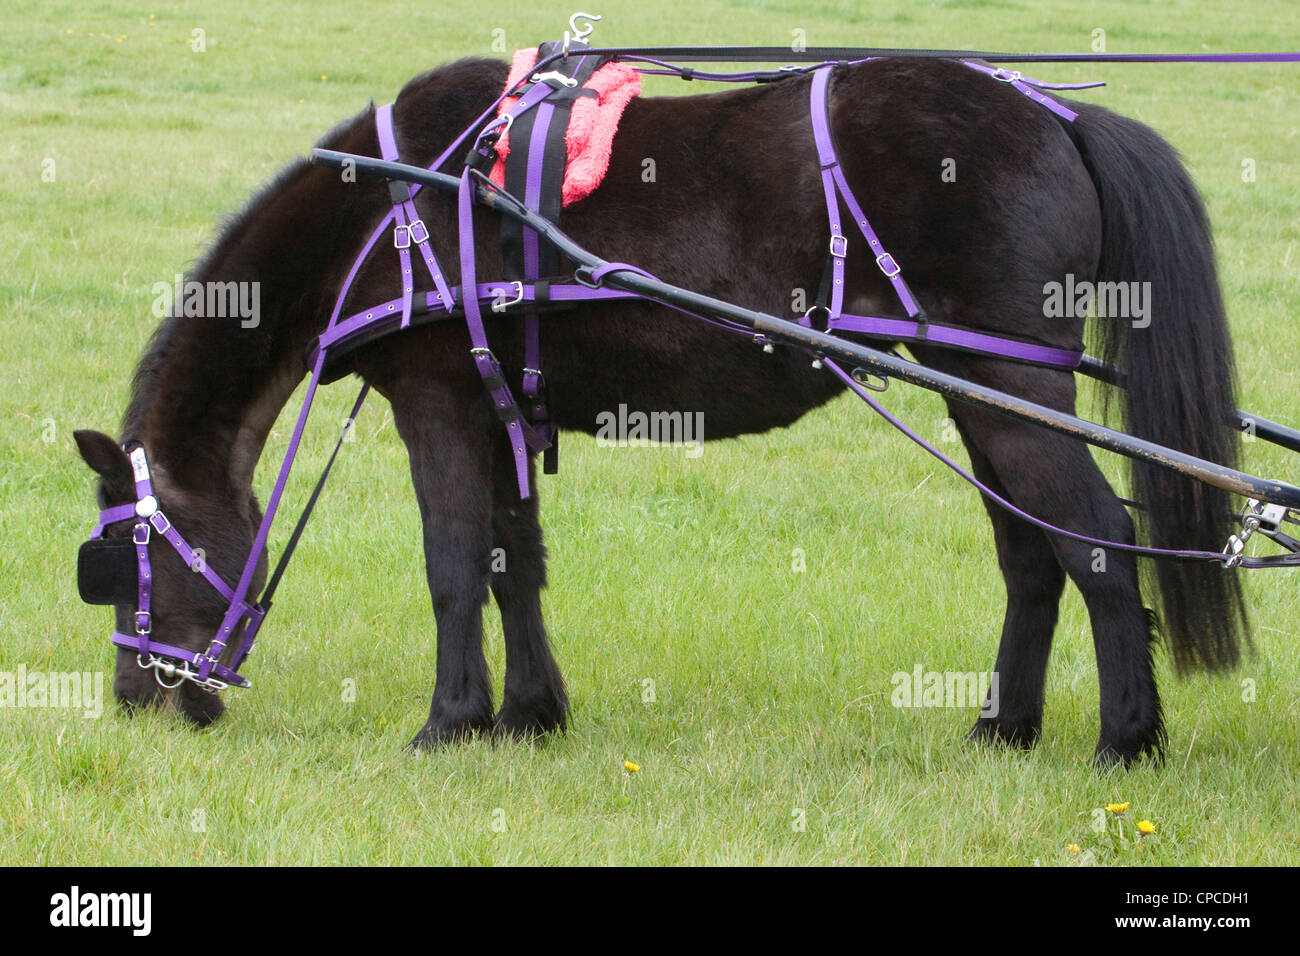 A Scurry Driving Pony taking a break eating grass - Stock Image